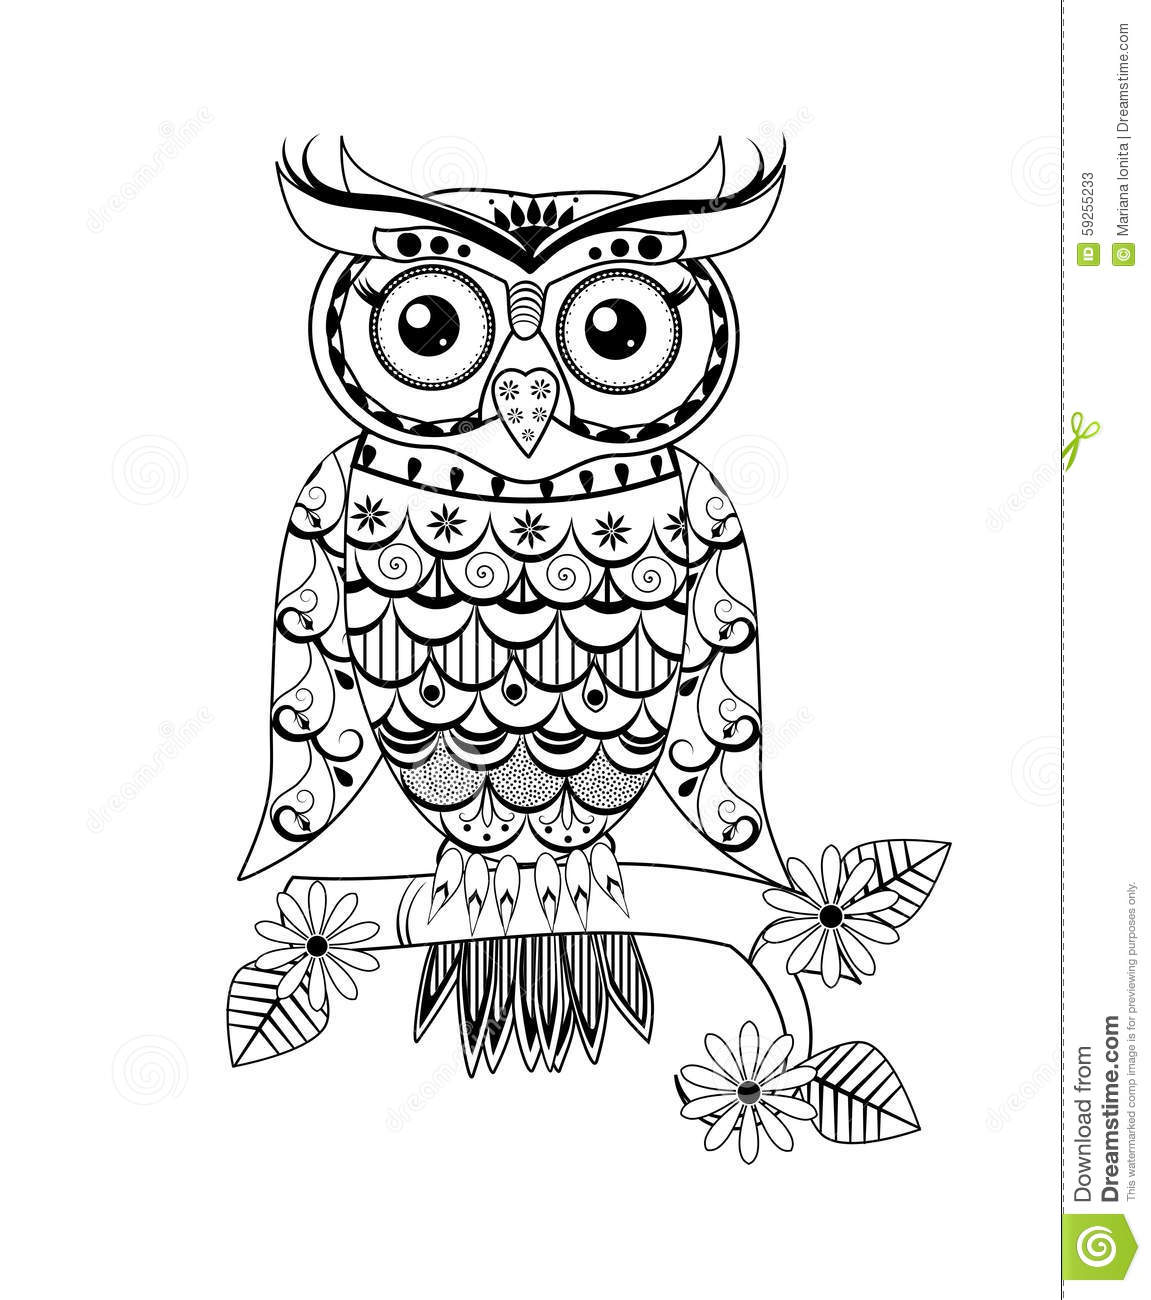 Baby Owl Coloring Pages For Adults